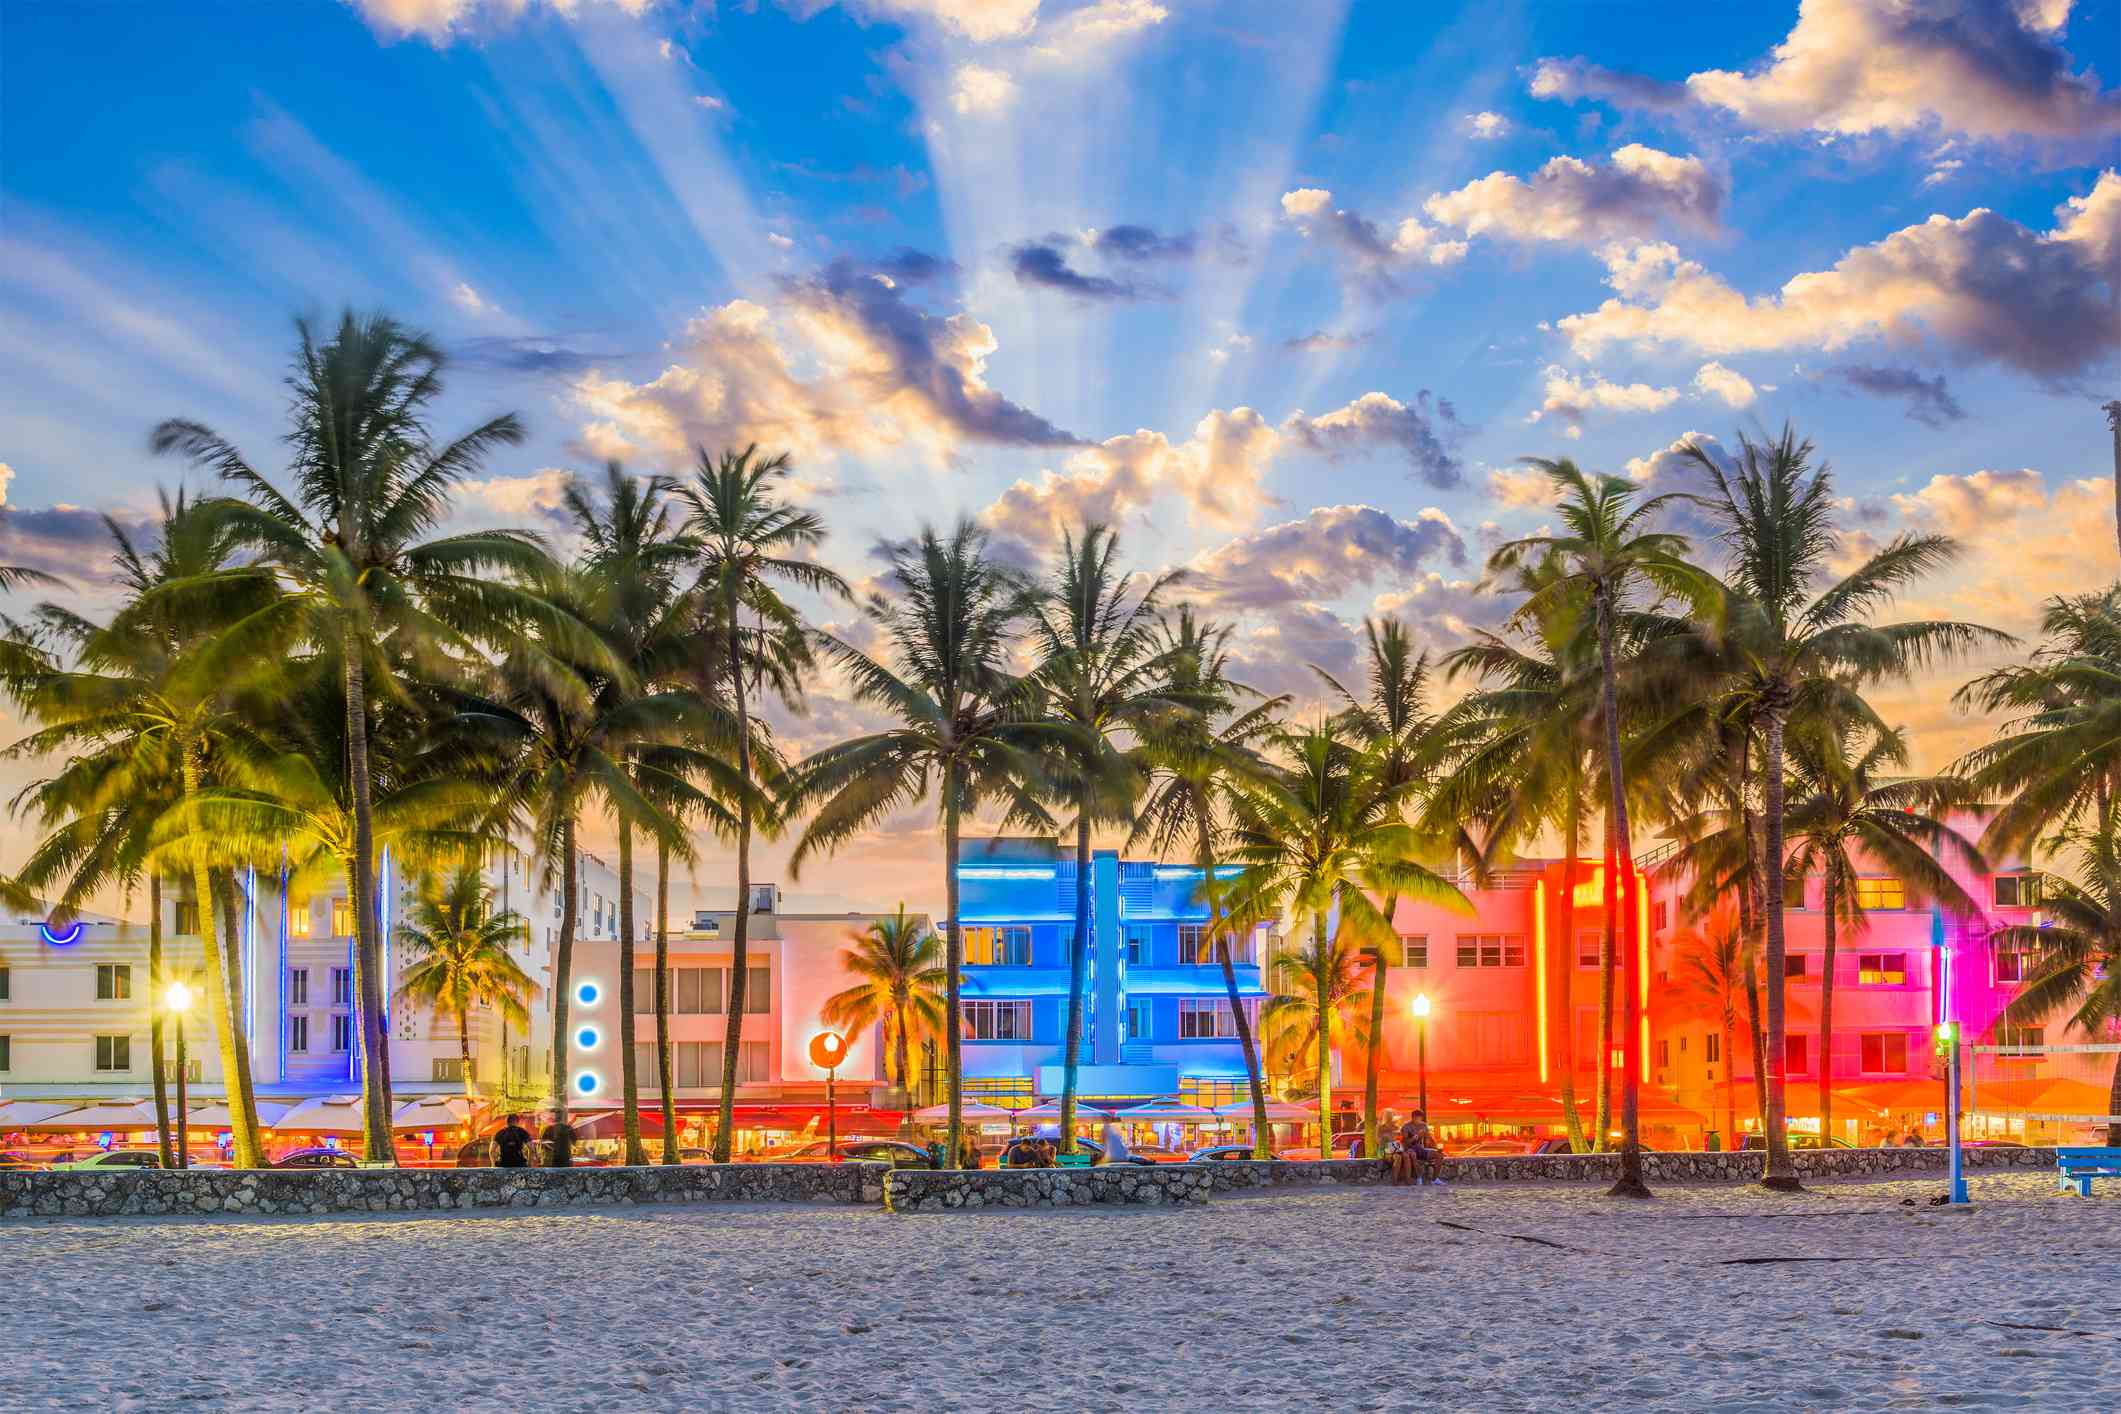 row of buildings on a waterfront with neon decorations. there are palm trees in front of the buldings and shafts of light illuminating the sky